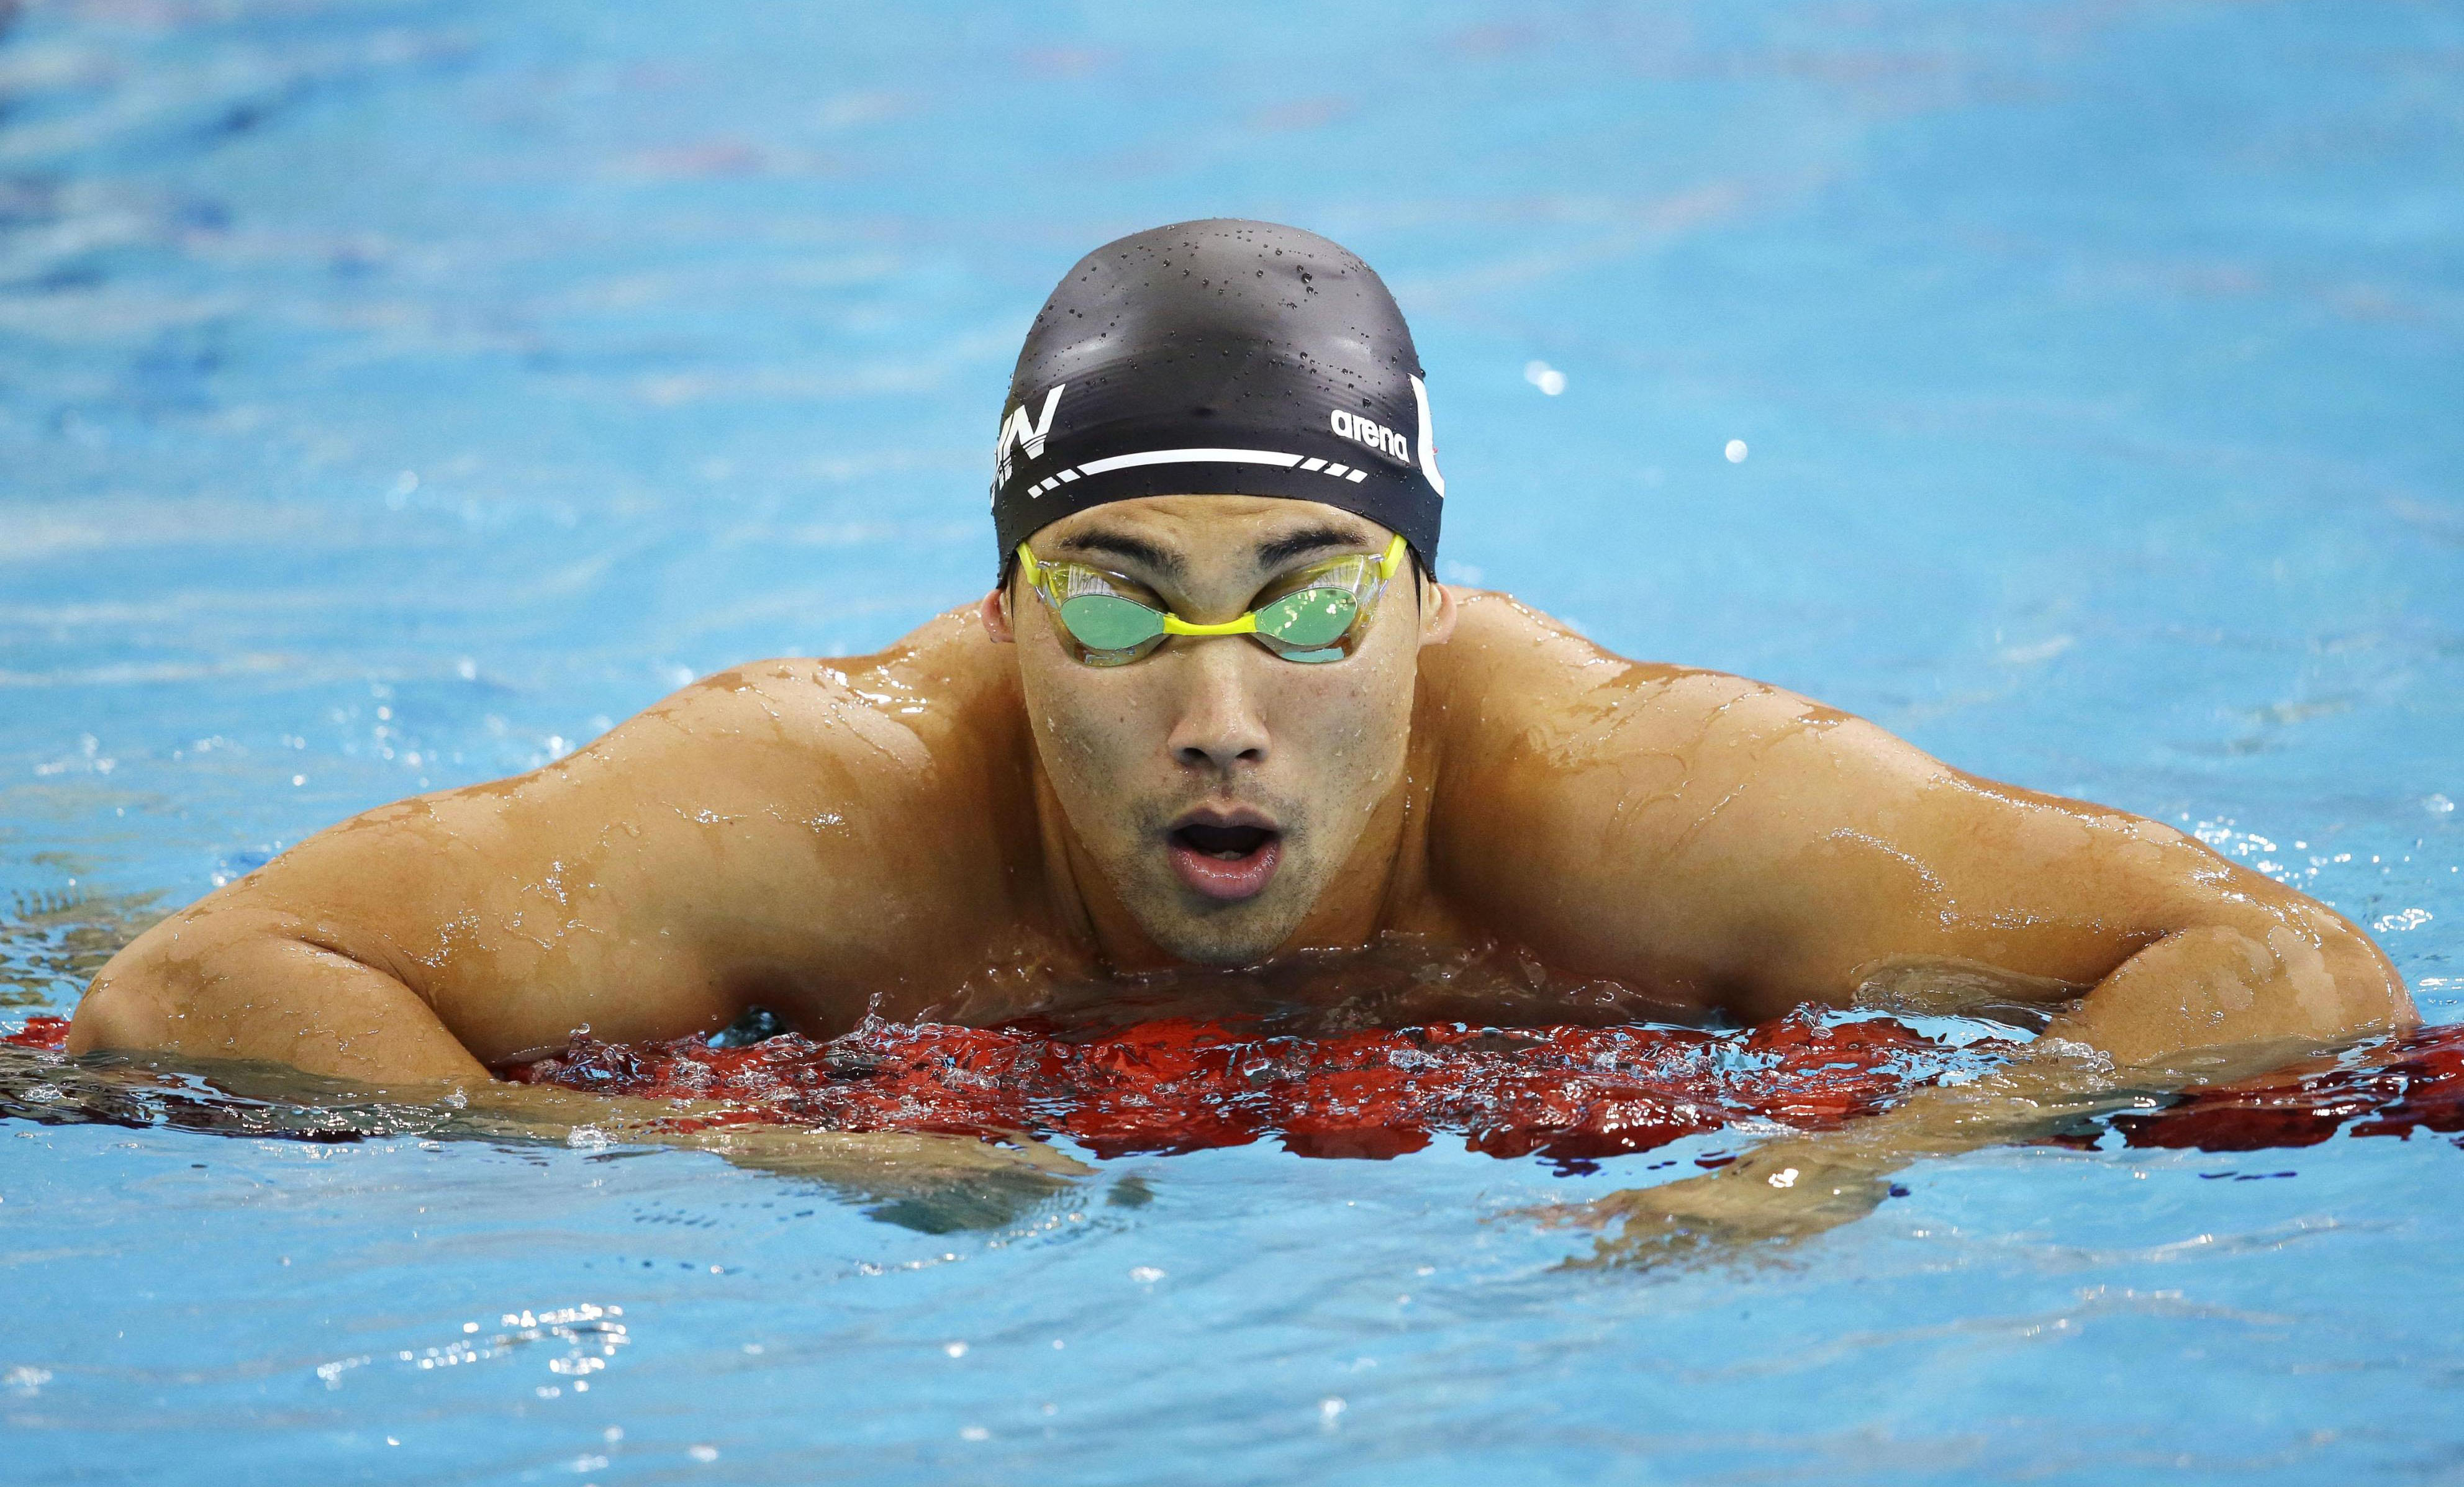 Hot water: Swimmer Naoya Tomita has been expelled from the Asian Games after admitting to stealing a photojournalist's camera. | KYODO